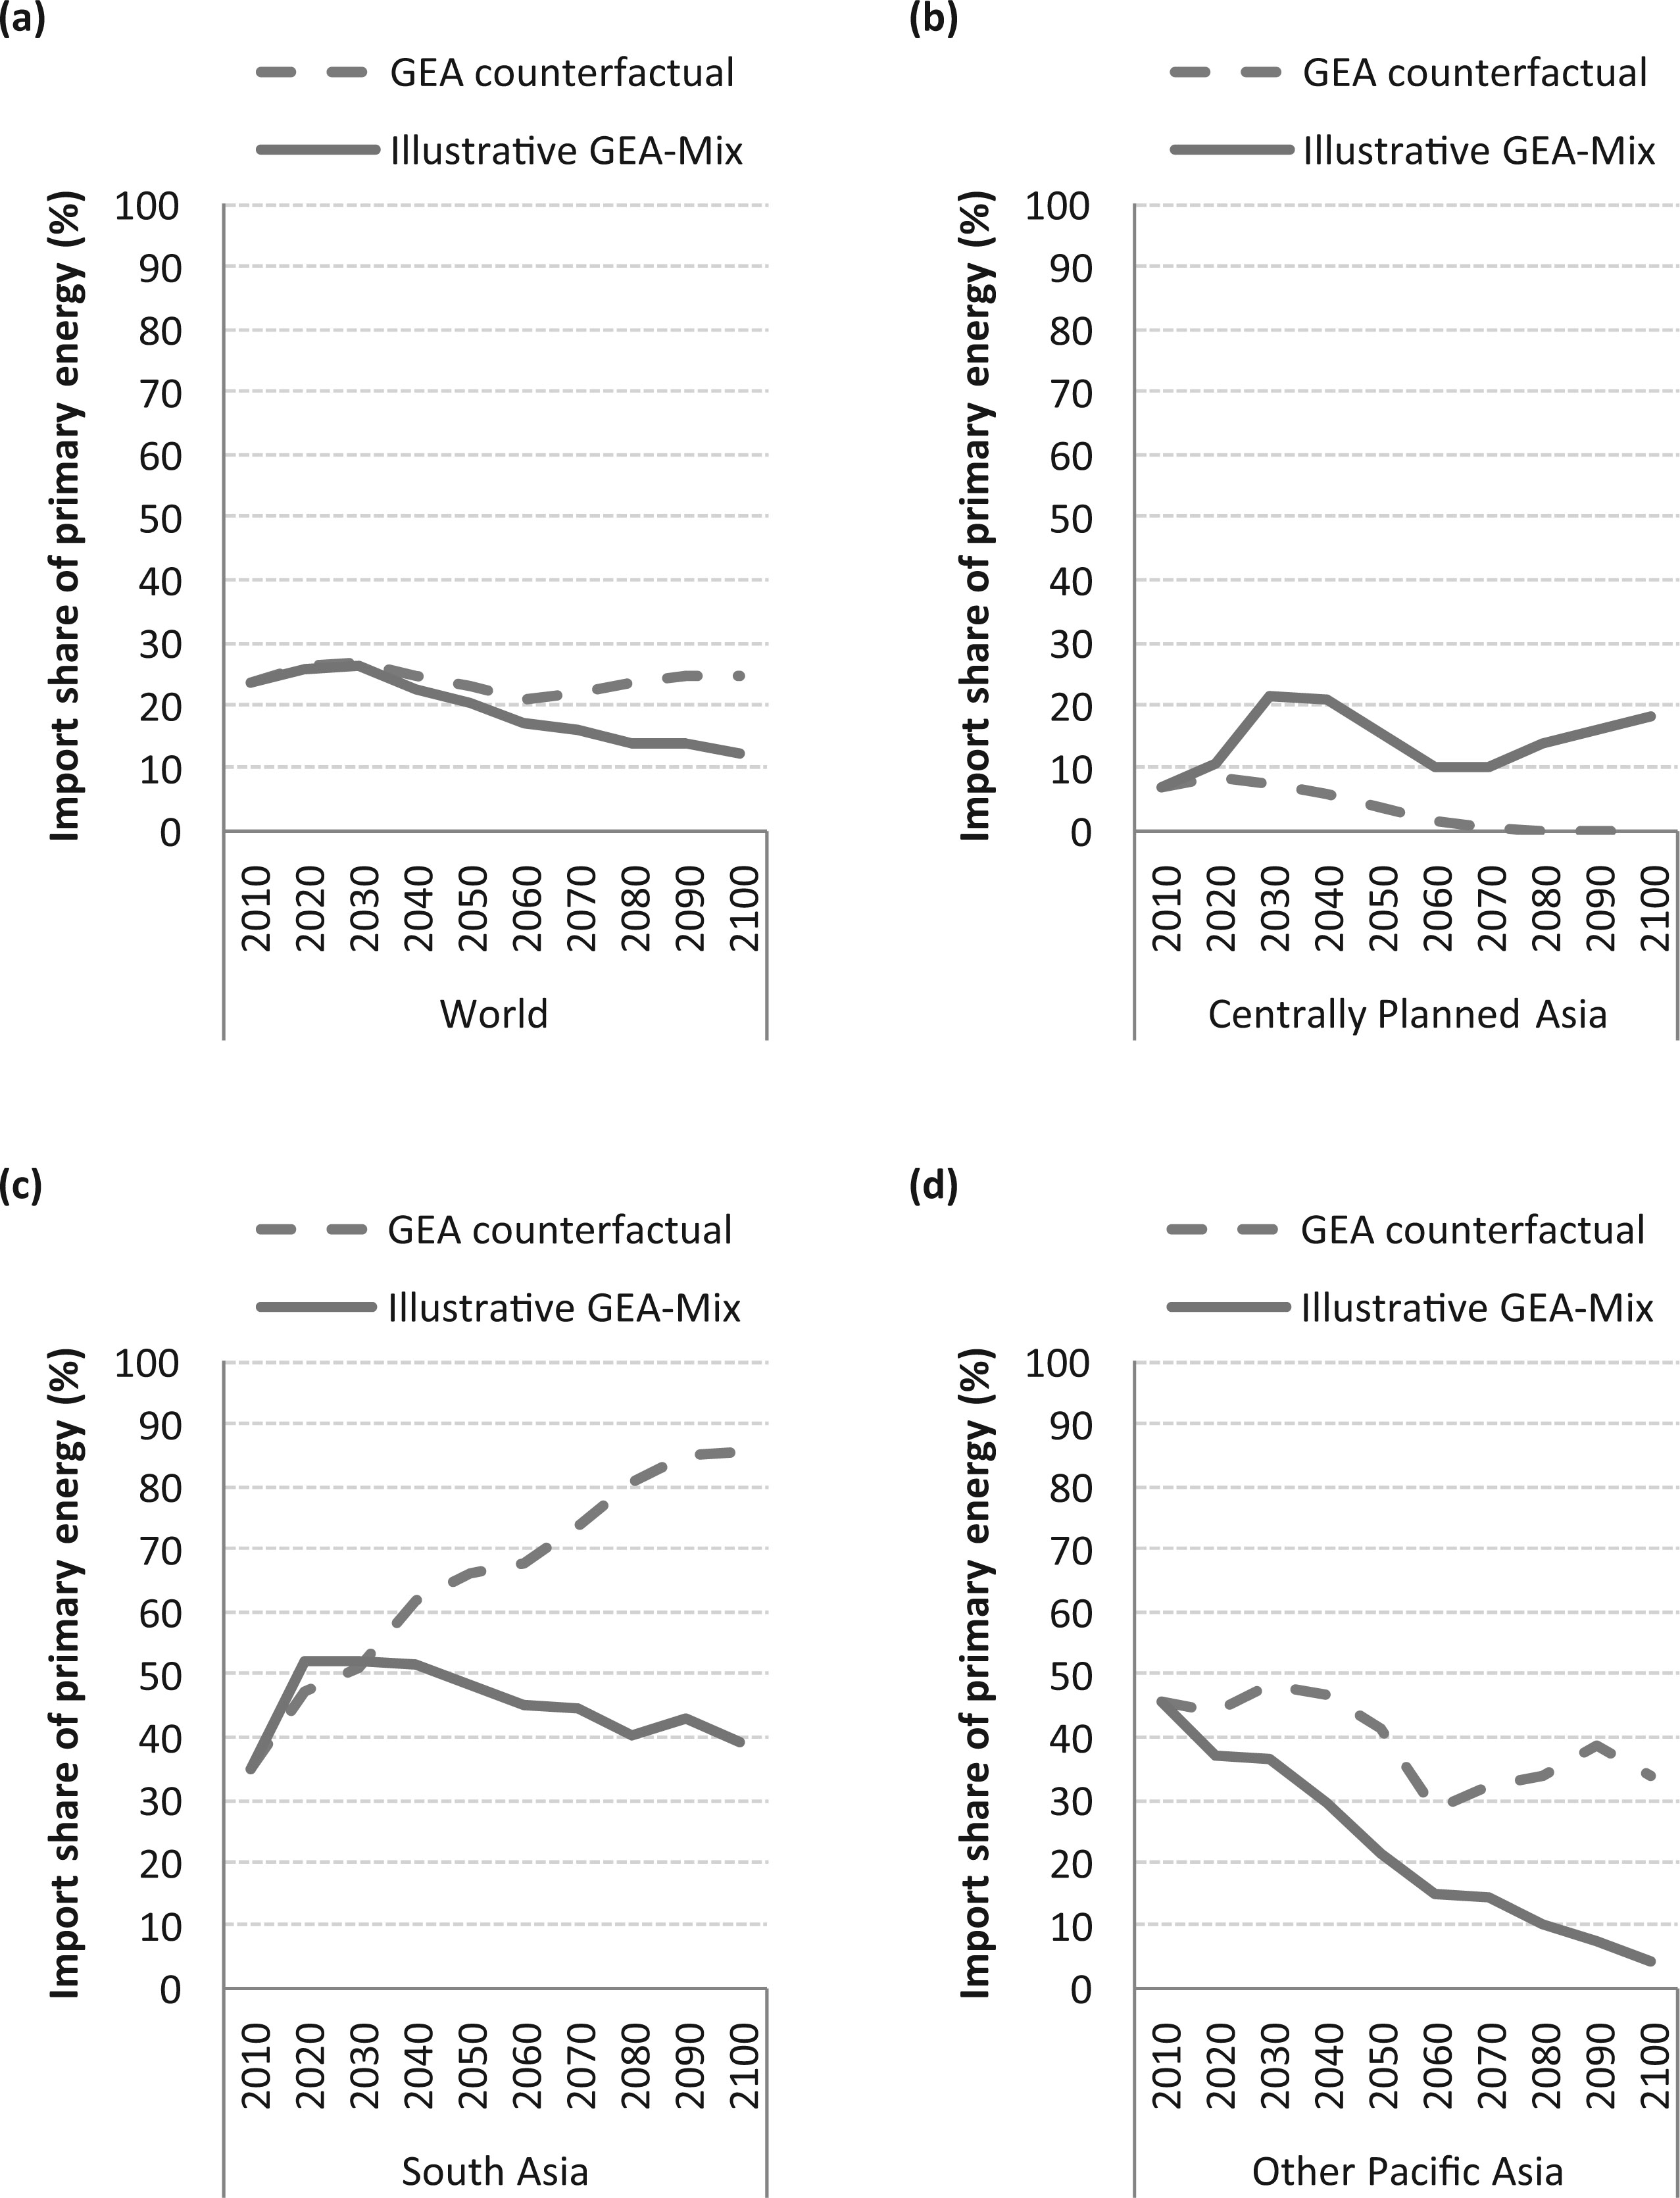 The import share of primary energy supply in the world (a) Centrally Planned Asia (b) South Asia (c) and Other Pacific Asia (d) in the GEA counterfactual and illustrative GEA-Mix pathways